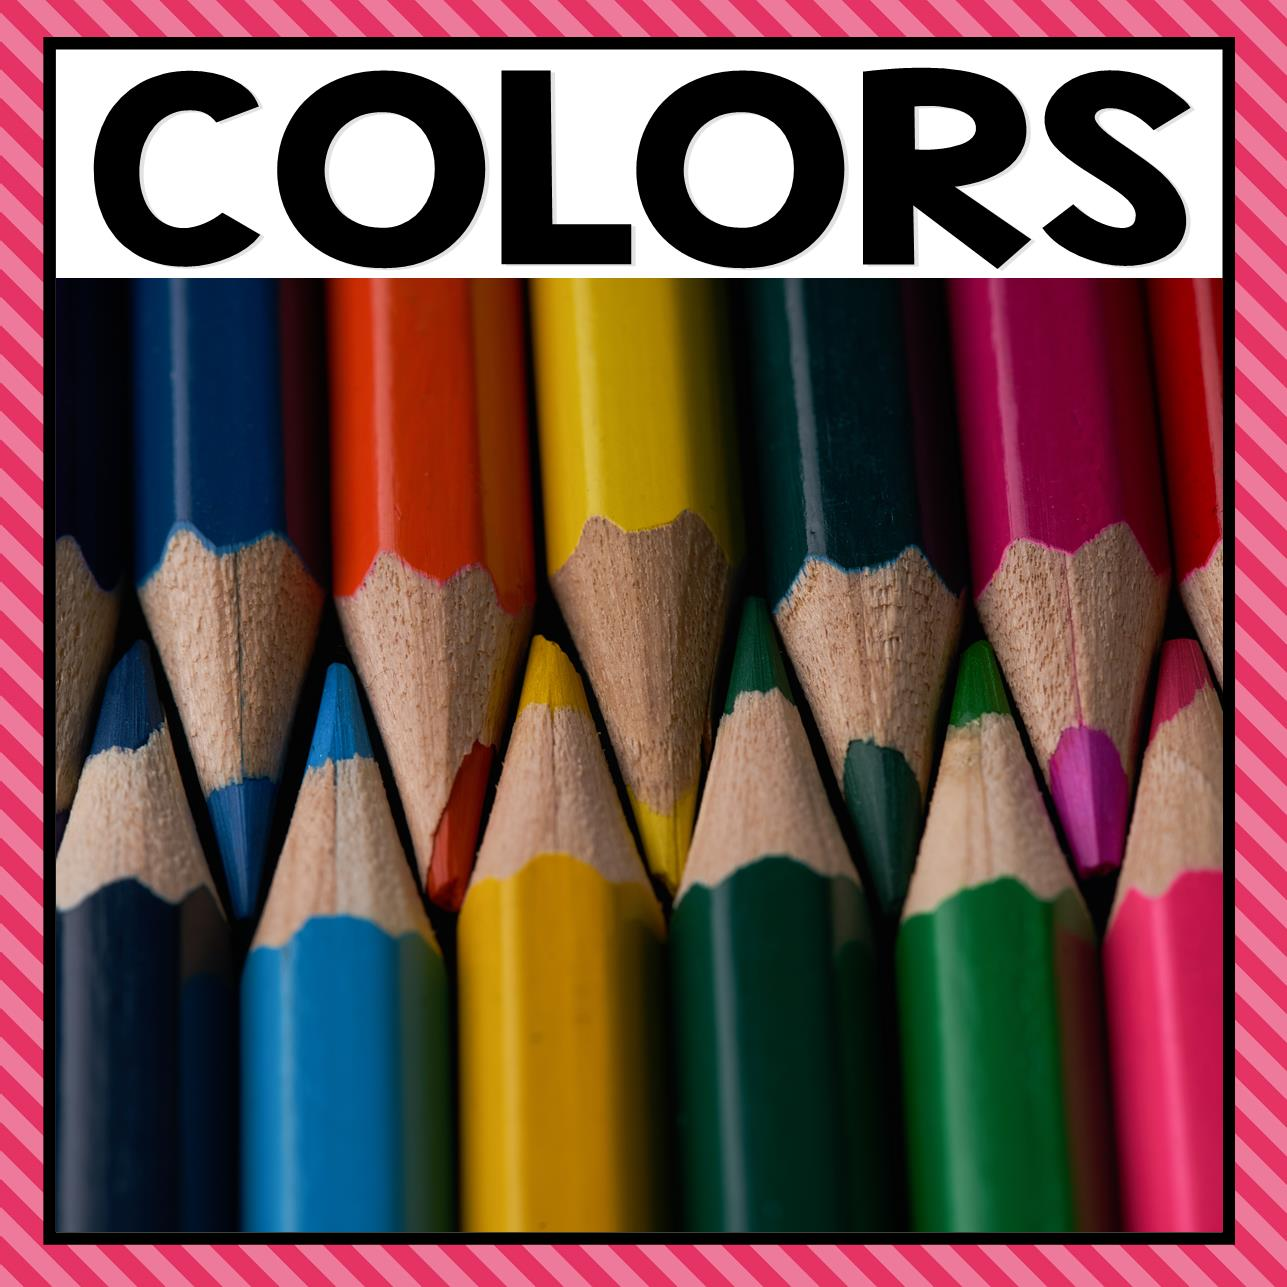 There are so many different color activities that you can do at home or in the classroom. This page allows you to quickly see our favorite color ideas, activities and printables that have been featured on A Dab of Glue Will Do.